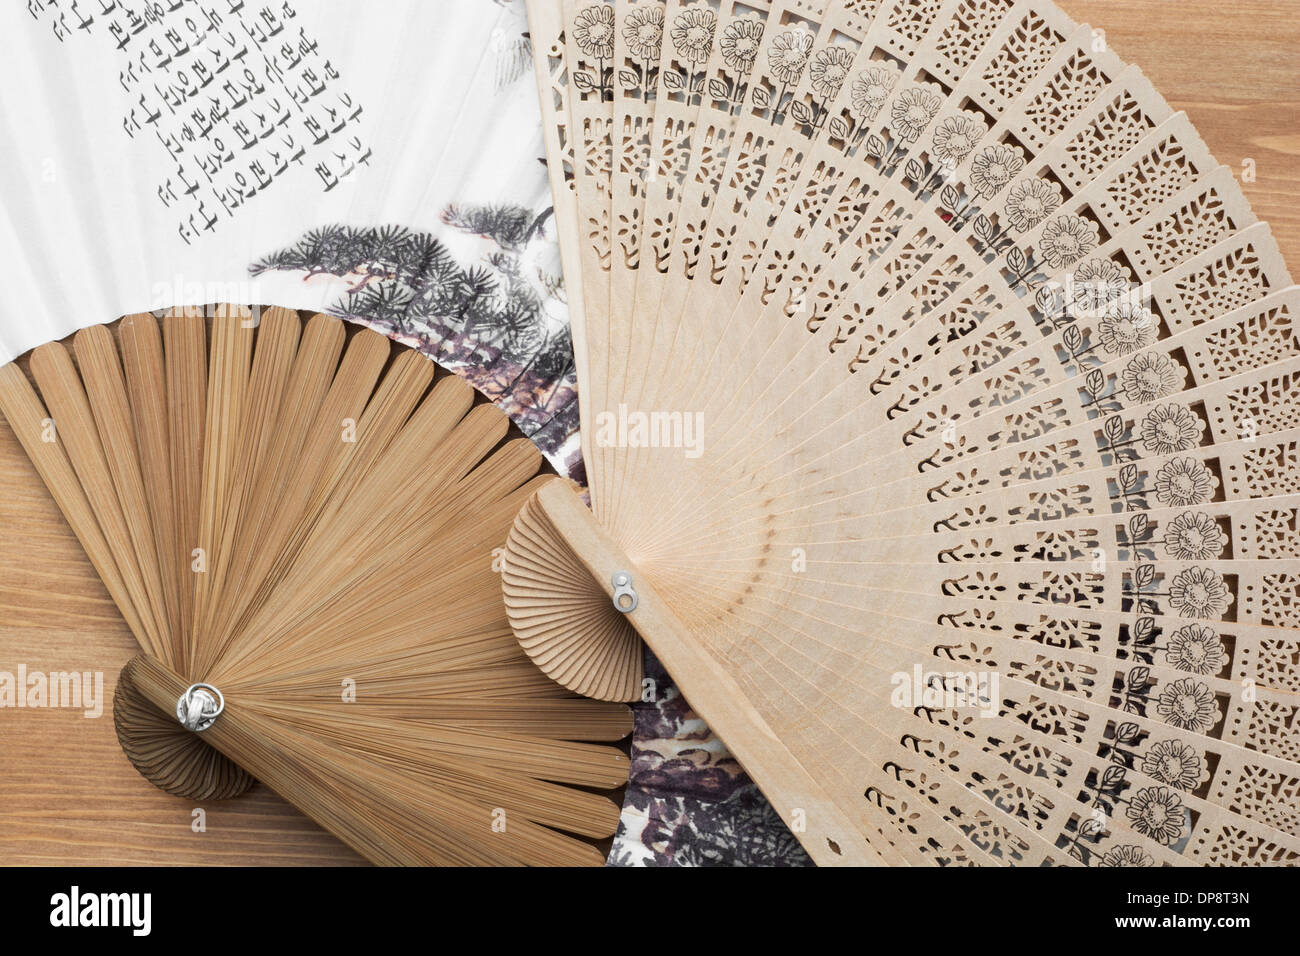 Traditional fans with far eastern motive on a wooden background. - Stock Image